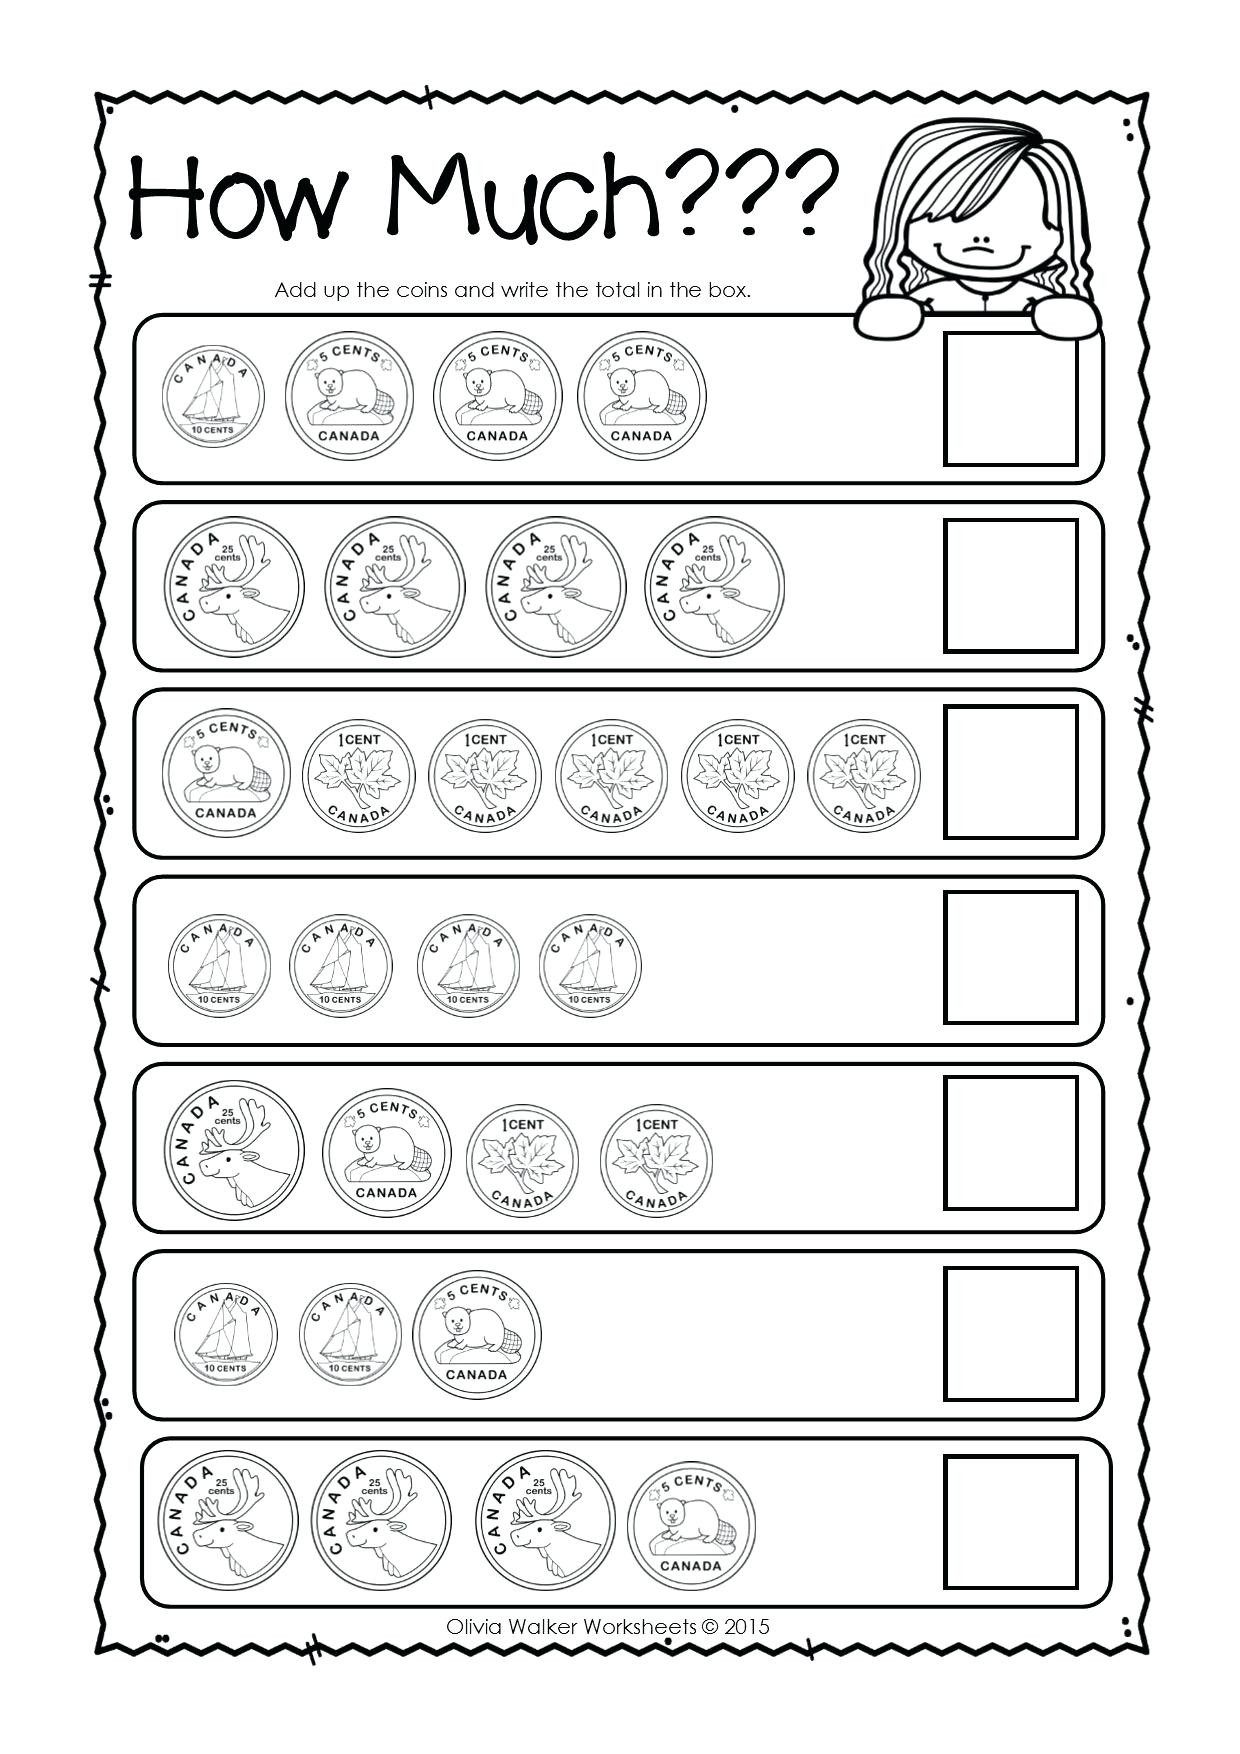 3rd Grade Money Worksheets Counting Money Worksheets to Print Counting Money